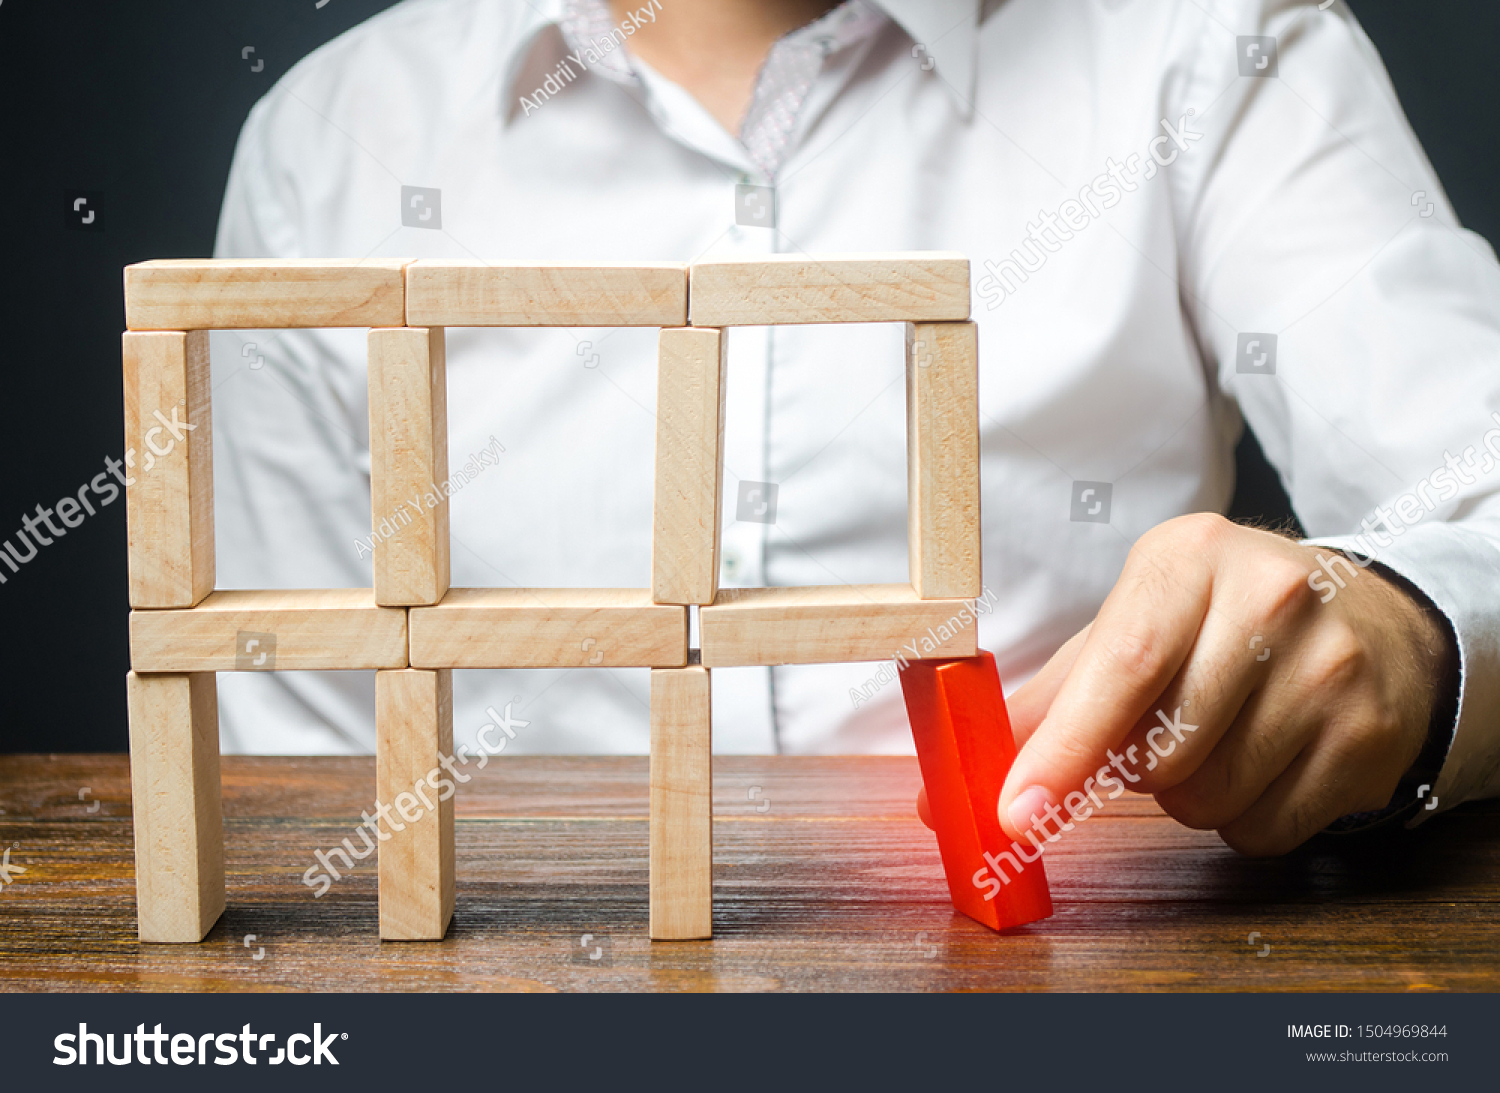 The man removes the red structural element, which will collapse. Incompetent businessman. Loss of key elements and employees. Damage to the opponent. Destruction of a complex structure by negligence. #1504969844